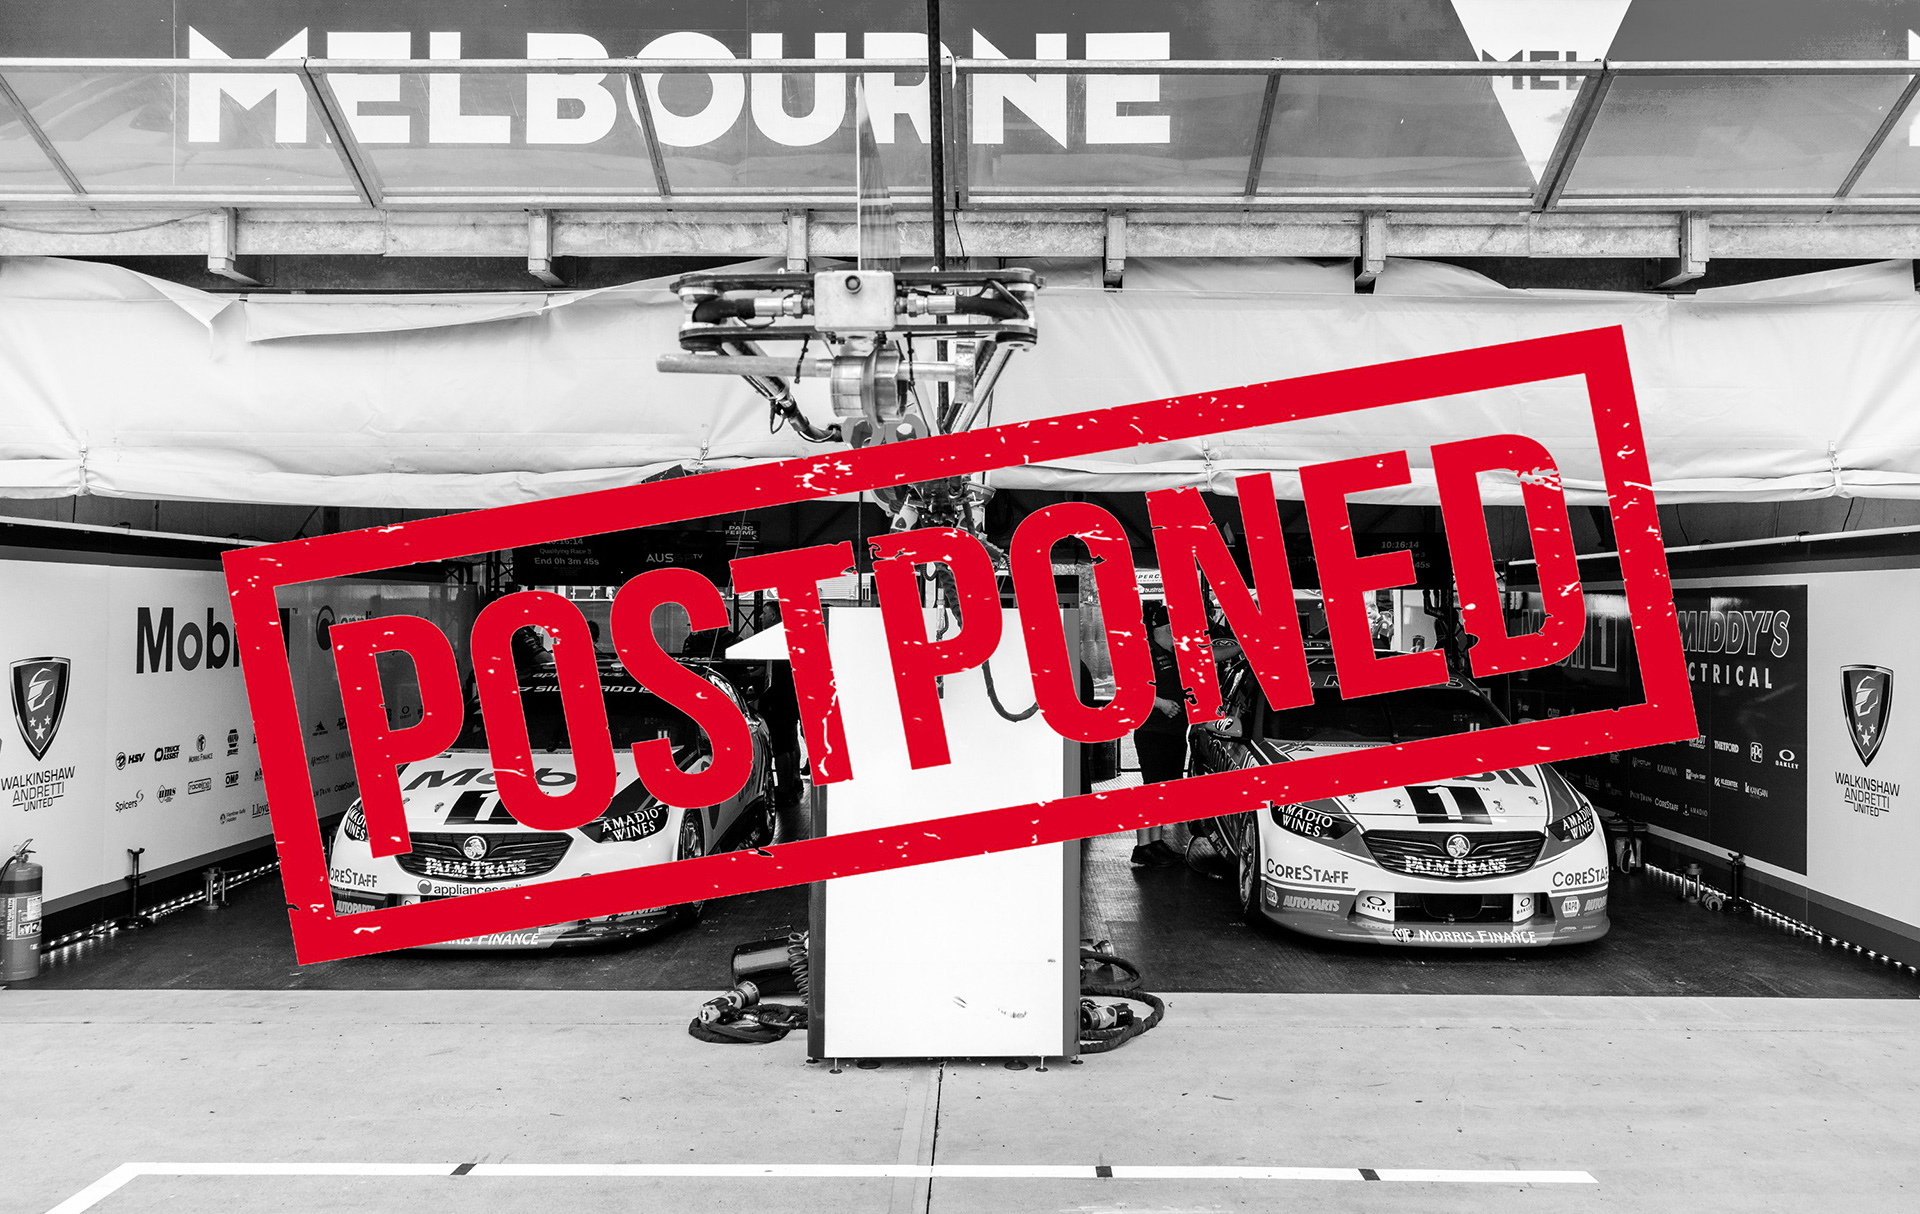 The decision that has been made to cancel the 2020 Australian Grand Prix.